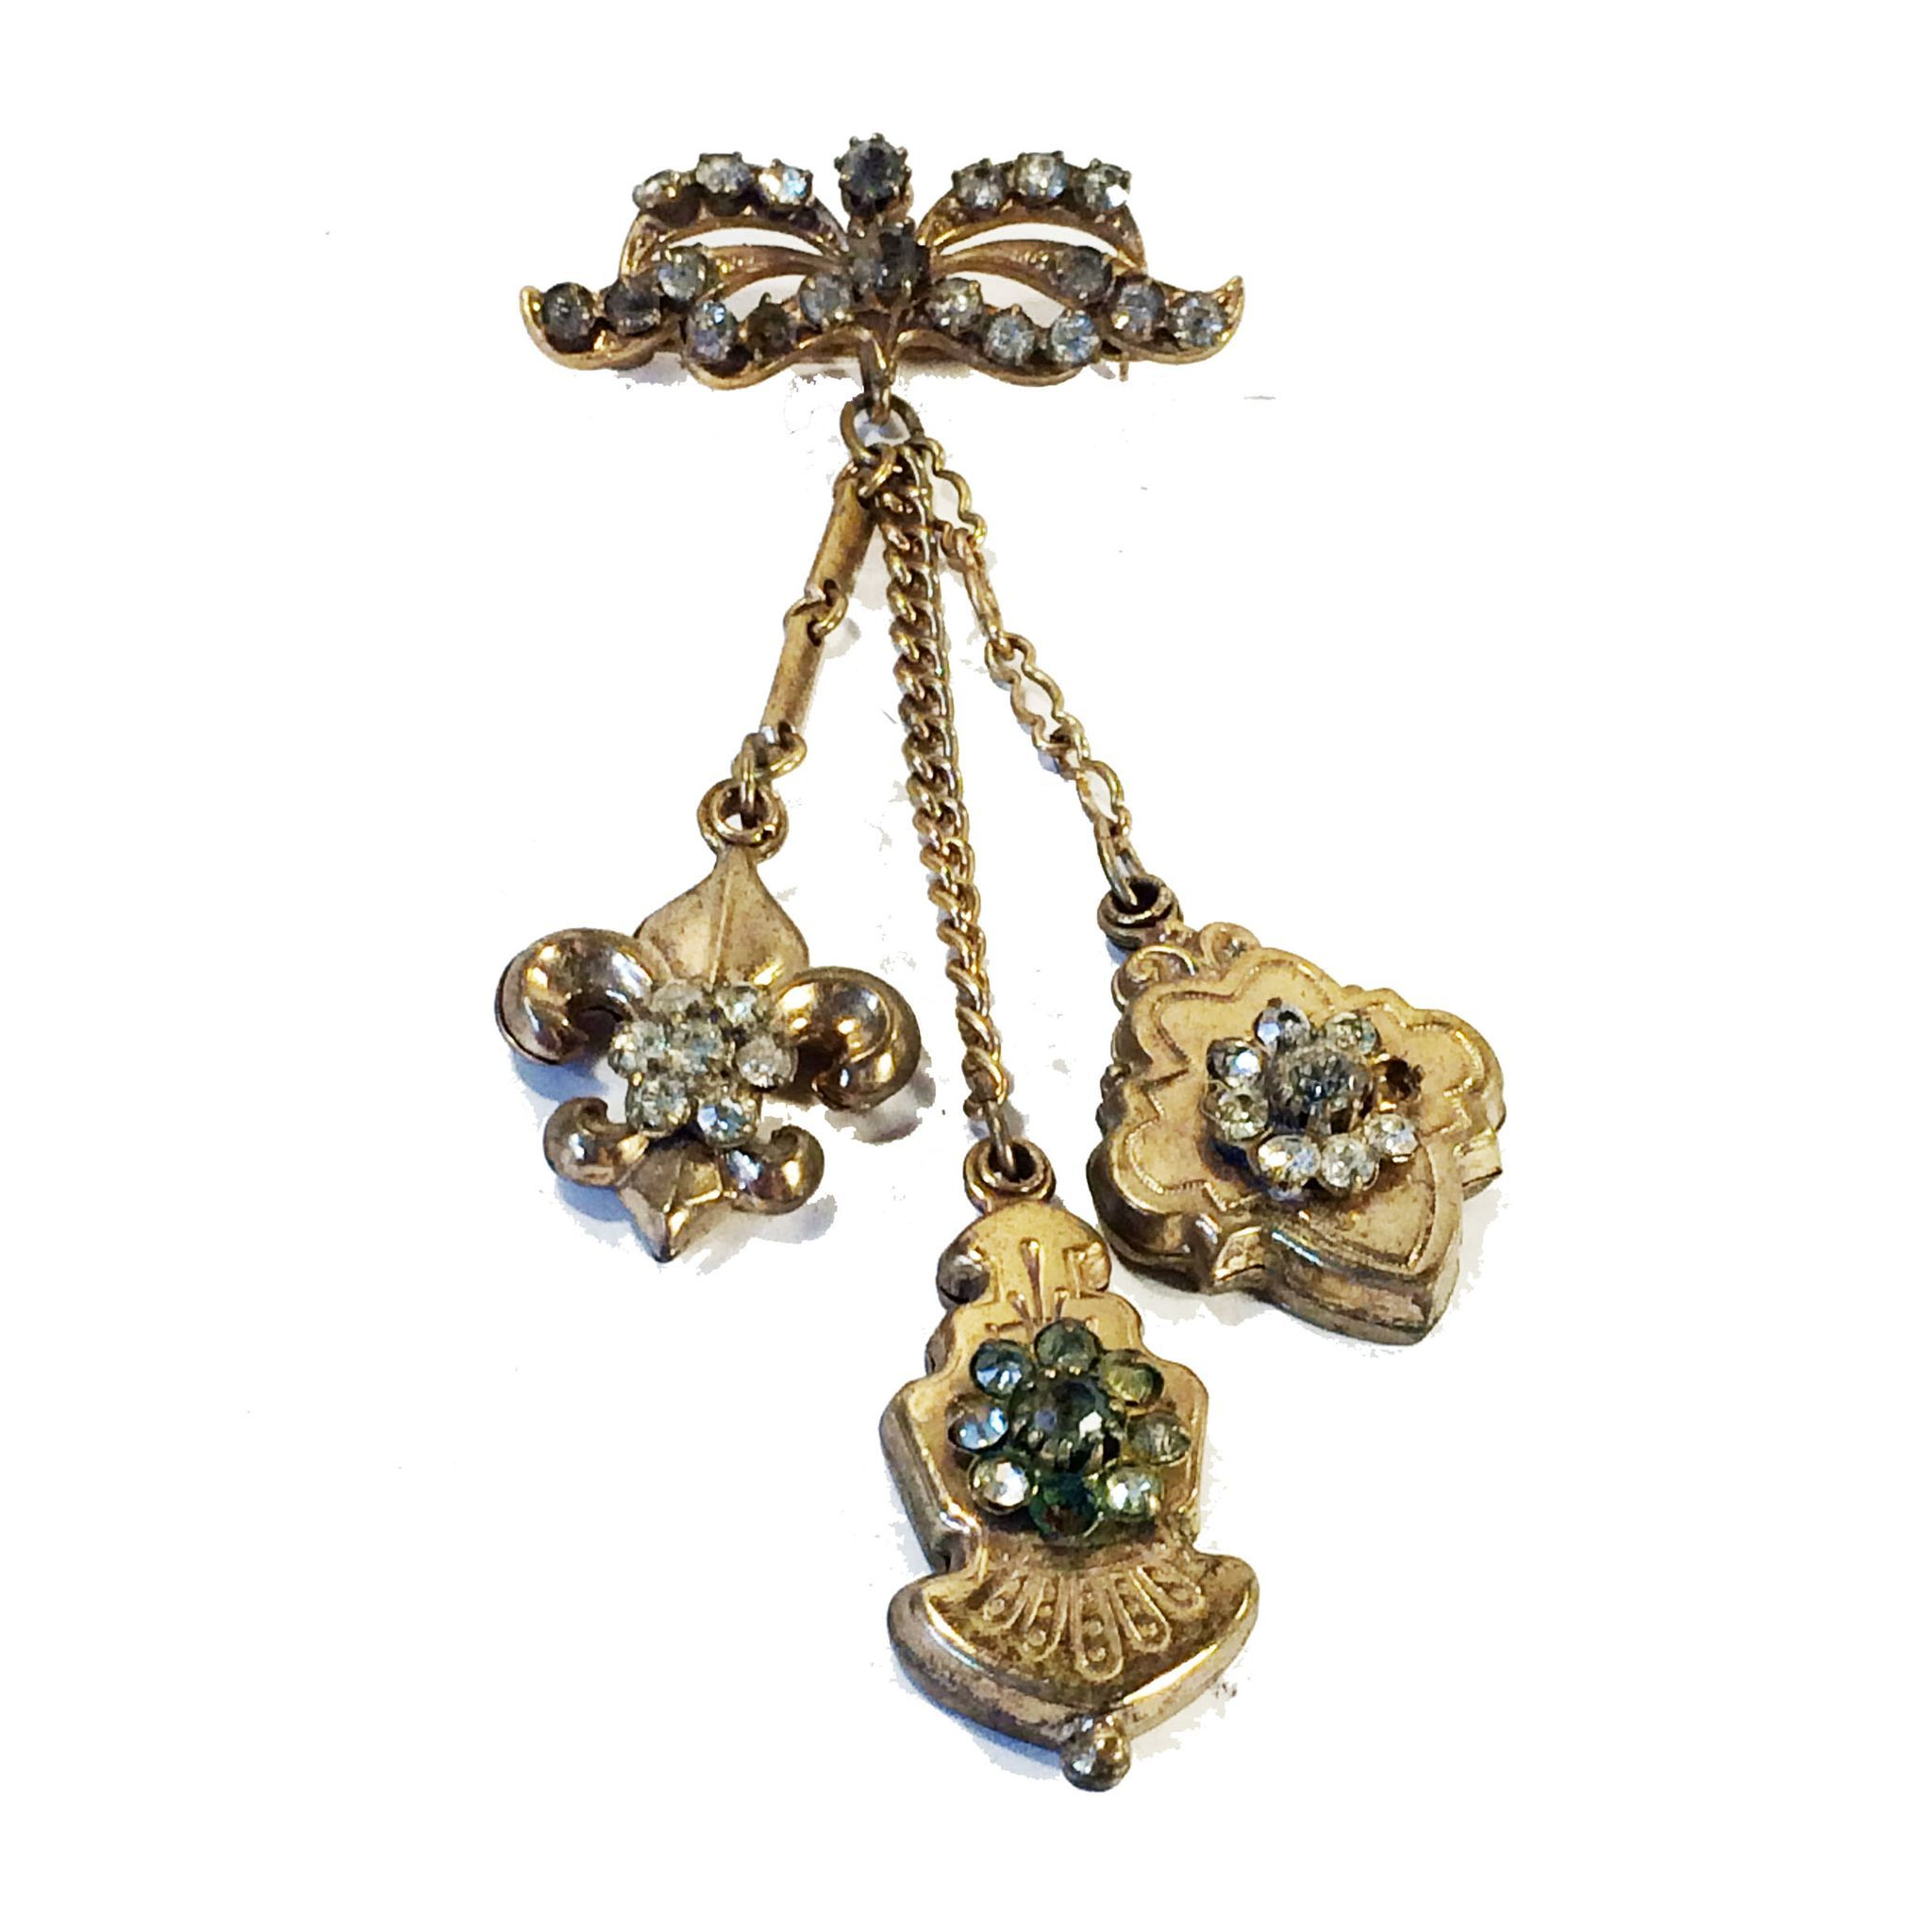 Older Gold Tone Metal Bow Shaped Bar Brooch with Three Dangling Detailed Fobs